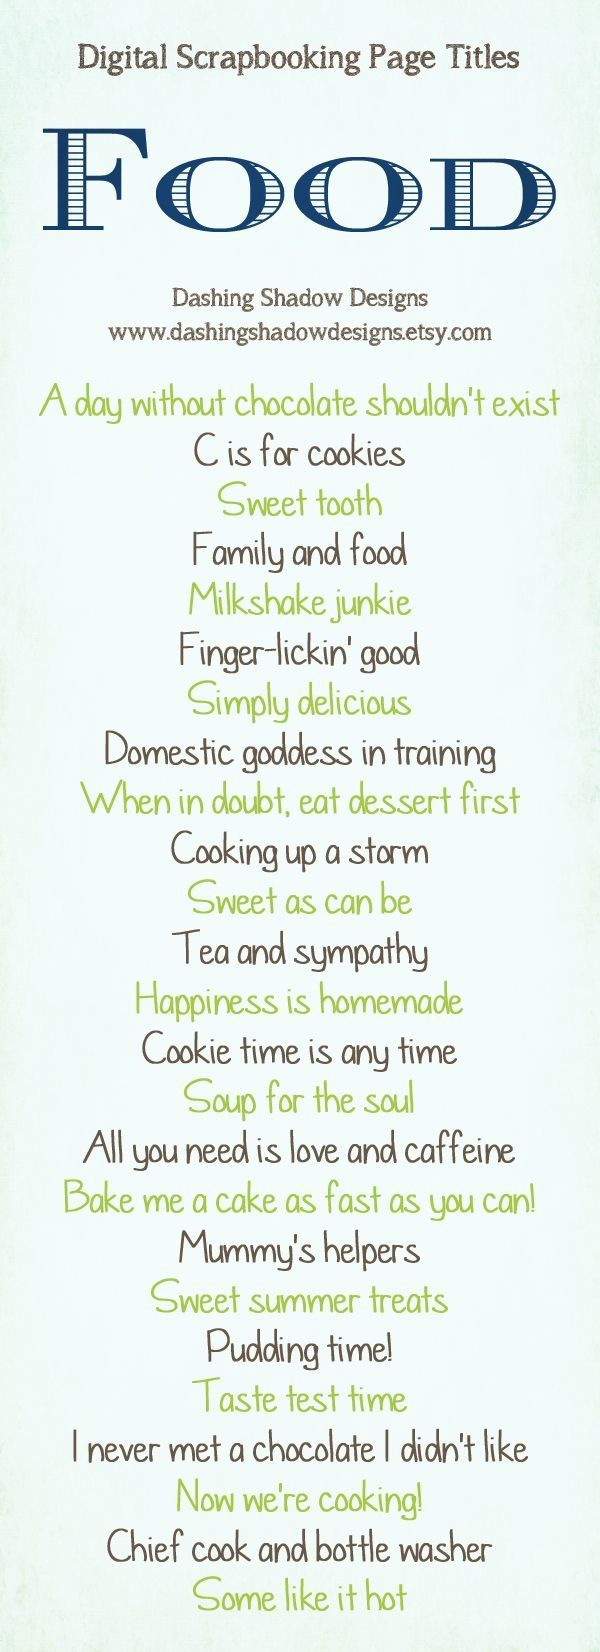 Scrapbook ideas and quotes - Scrapbook Page Title Ideas Glorious Food By Cassandra